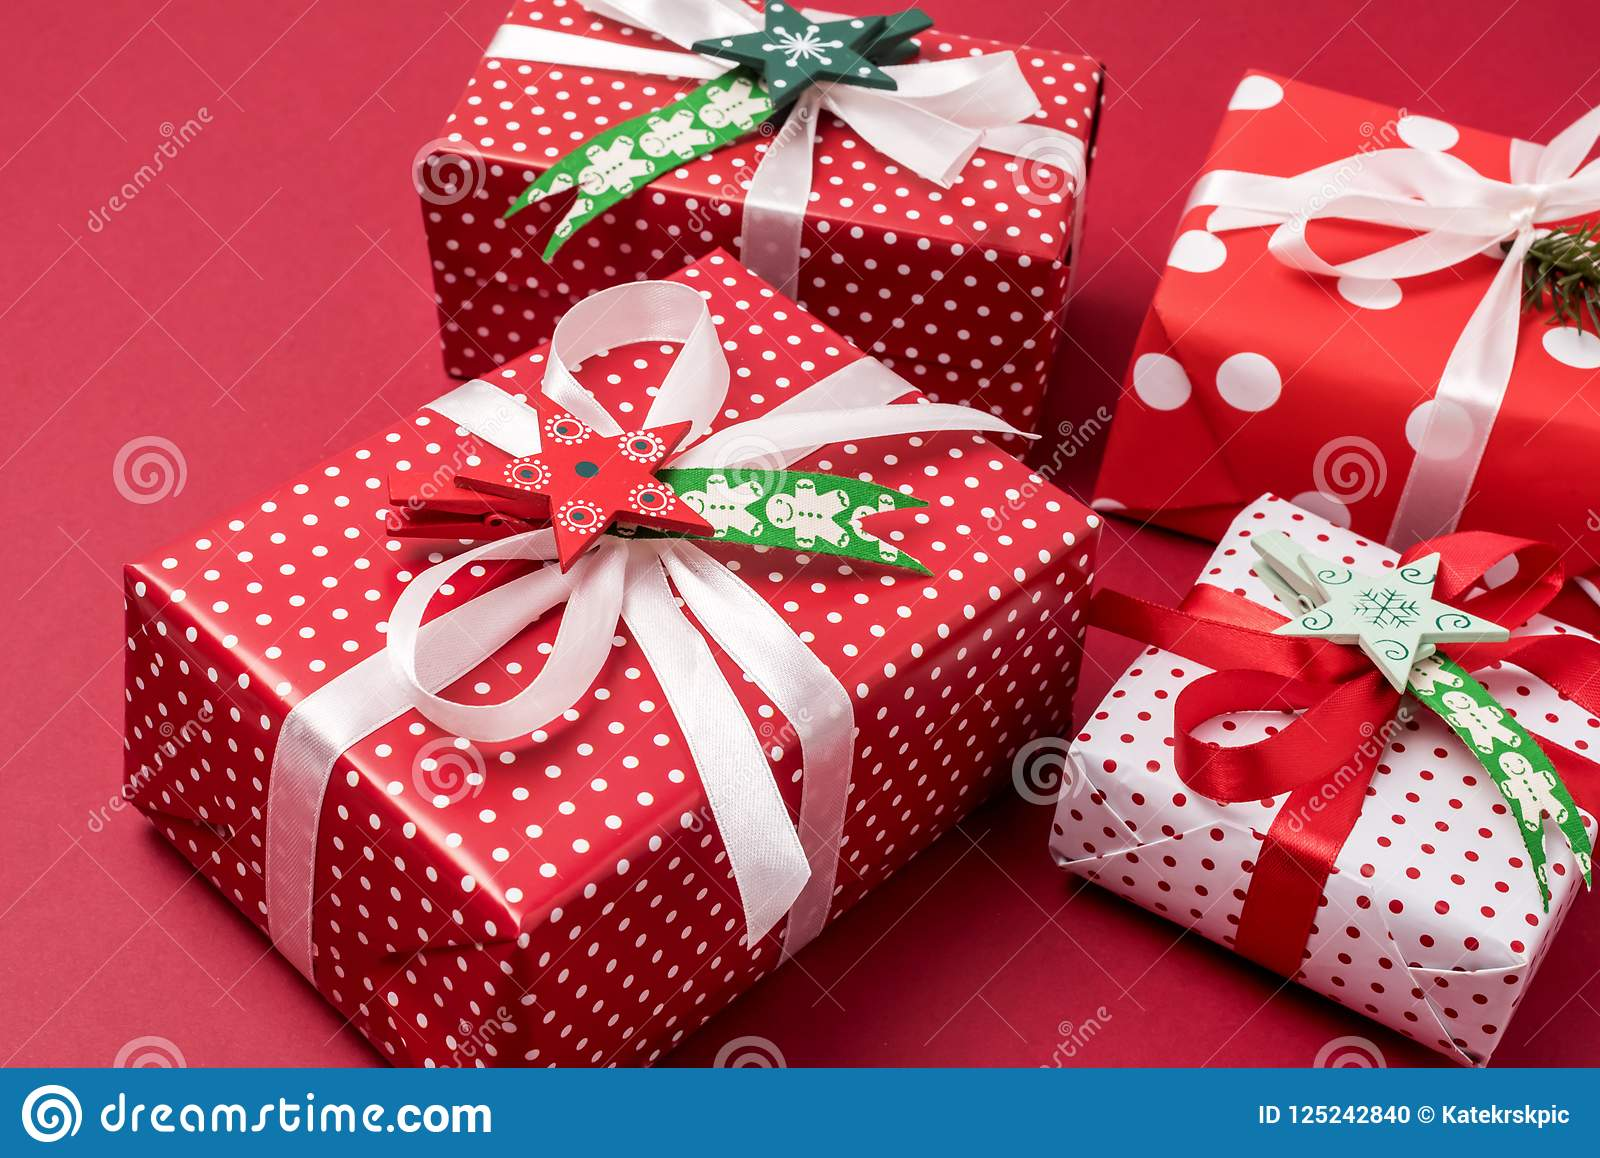 download set of christmas gift boxes christmas background holiday decorations presents in a red wrapper red